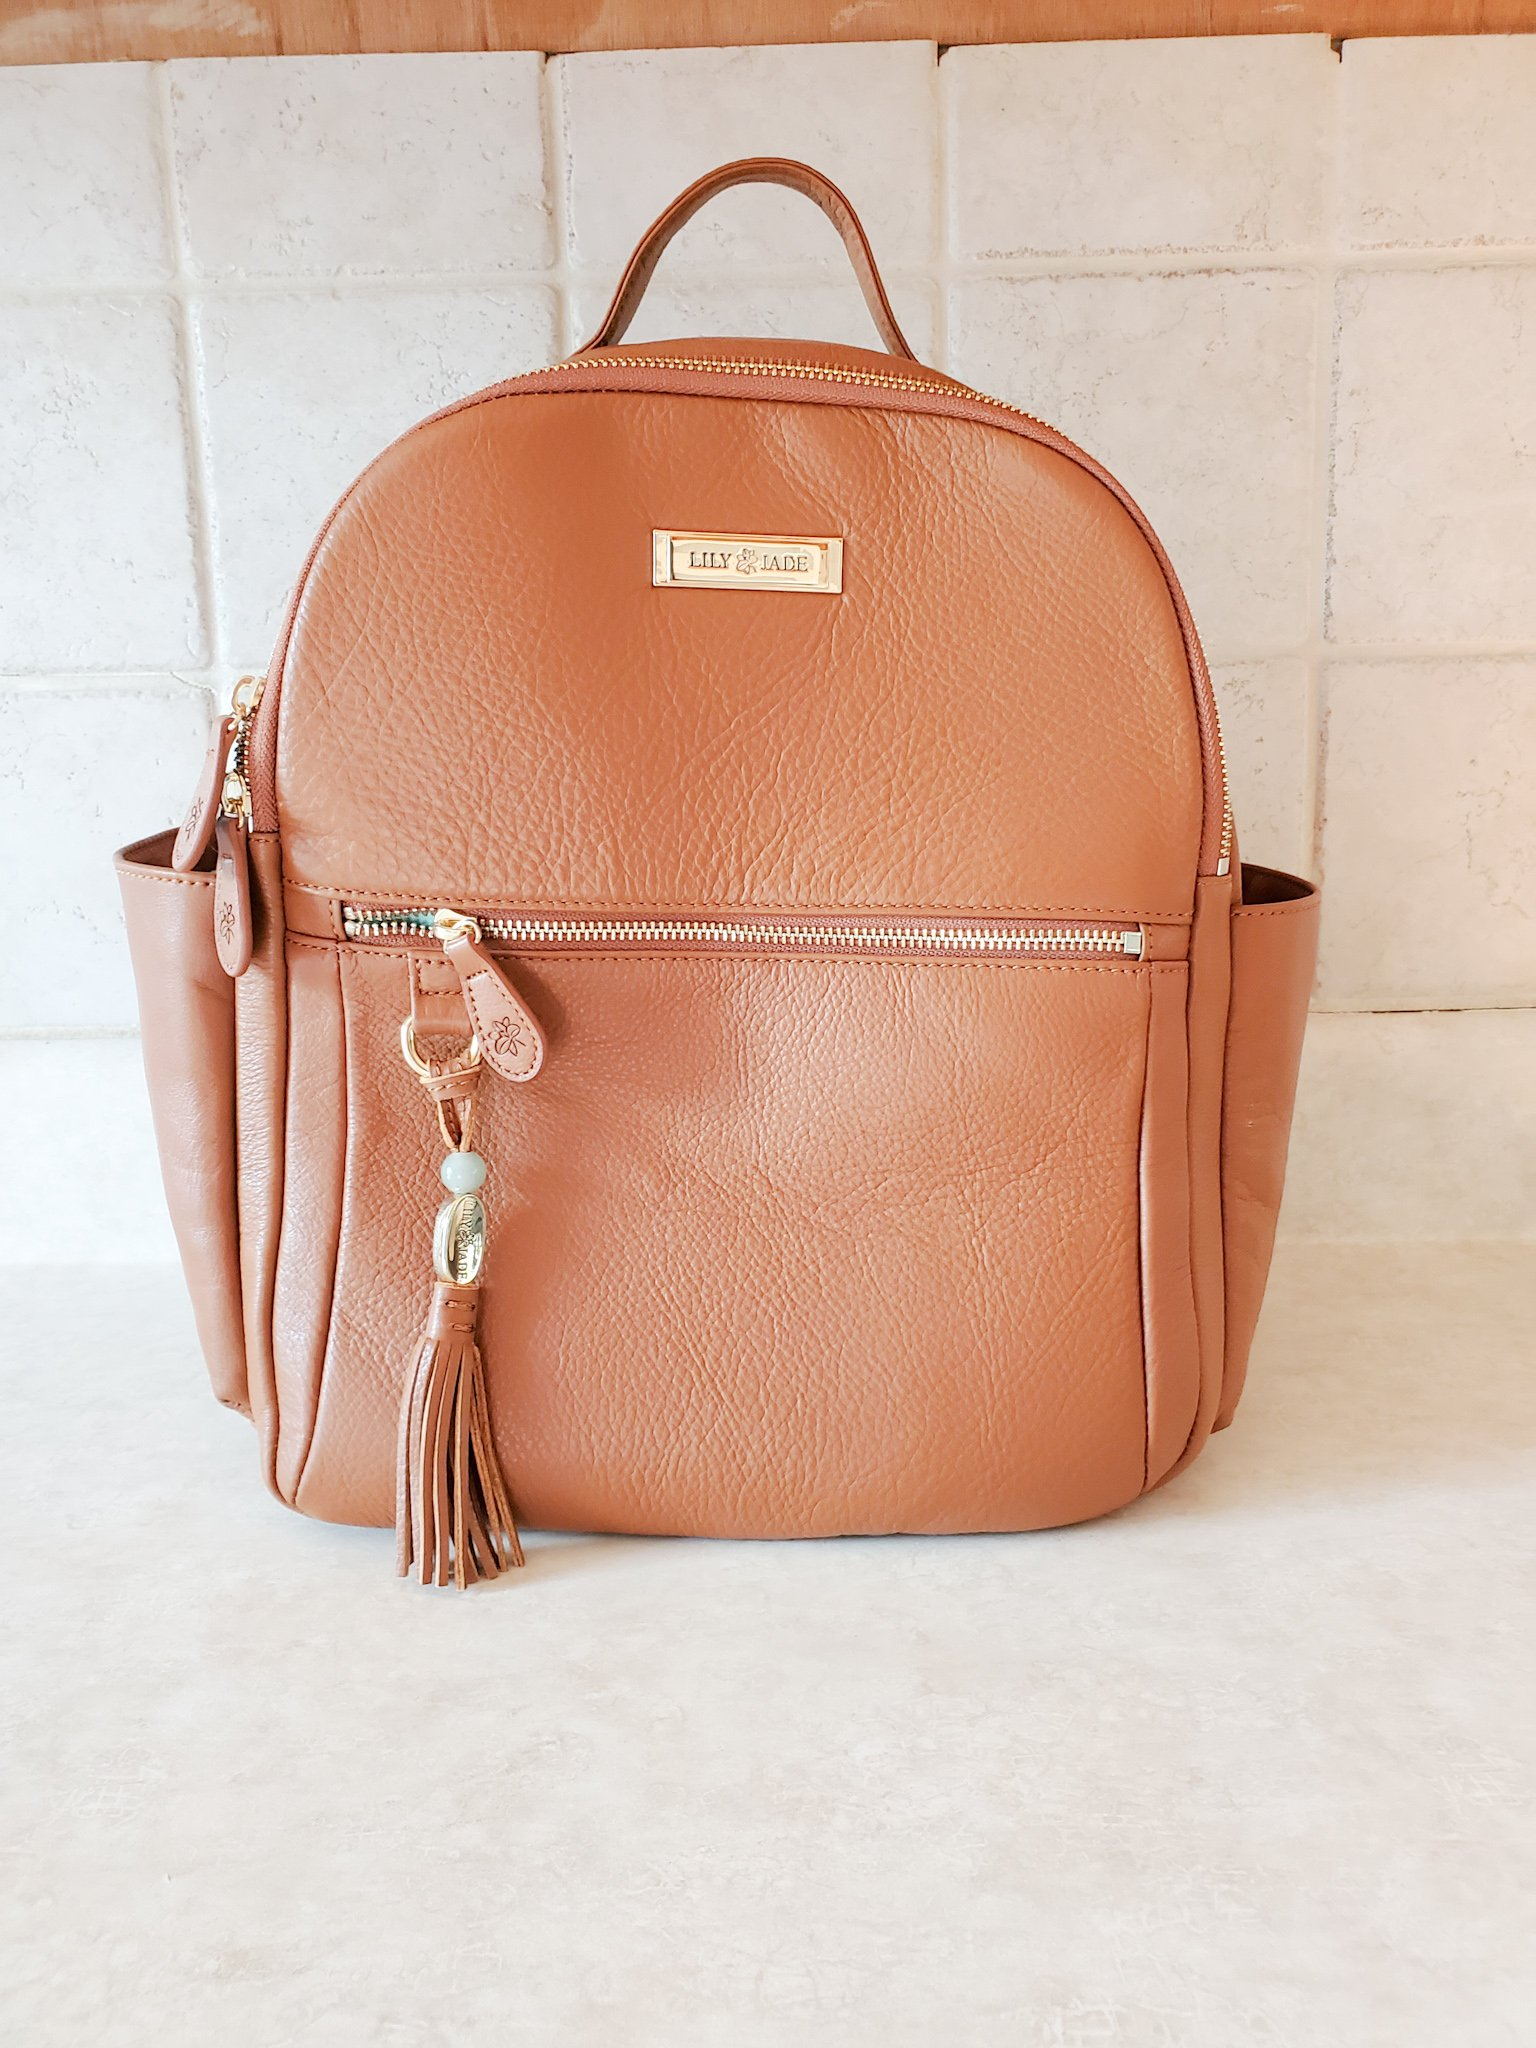 0b006f5fc5fc9 Lily Jade Anna Backpack (Medium) – Simplylynnblogxo